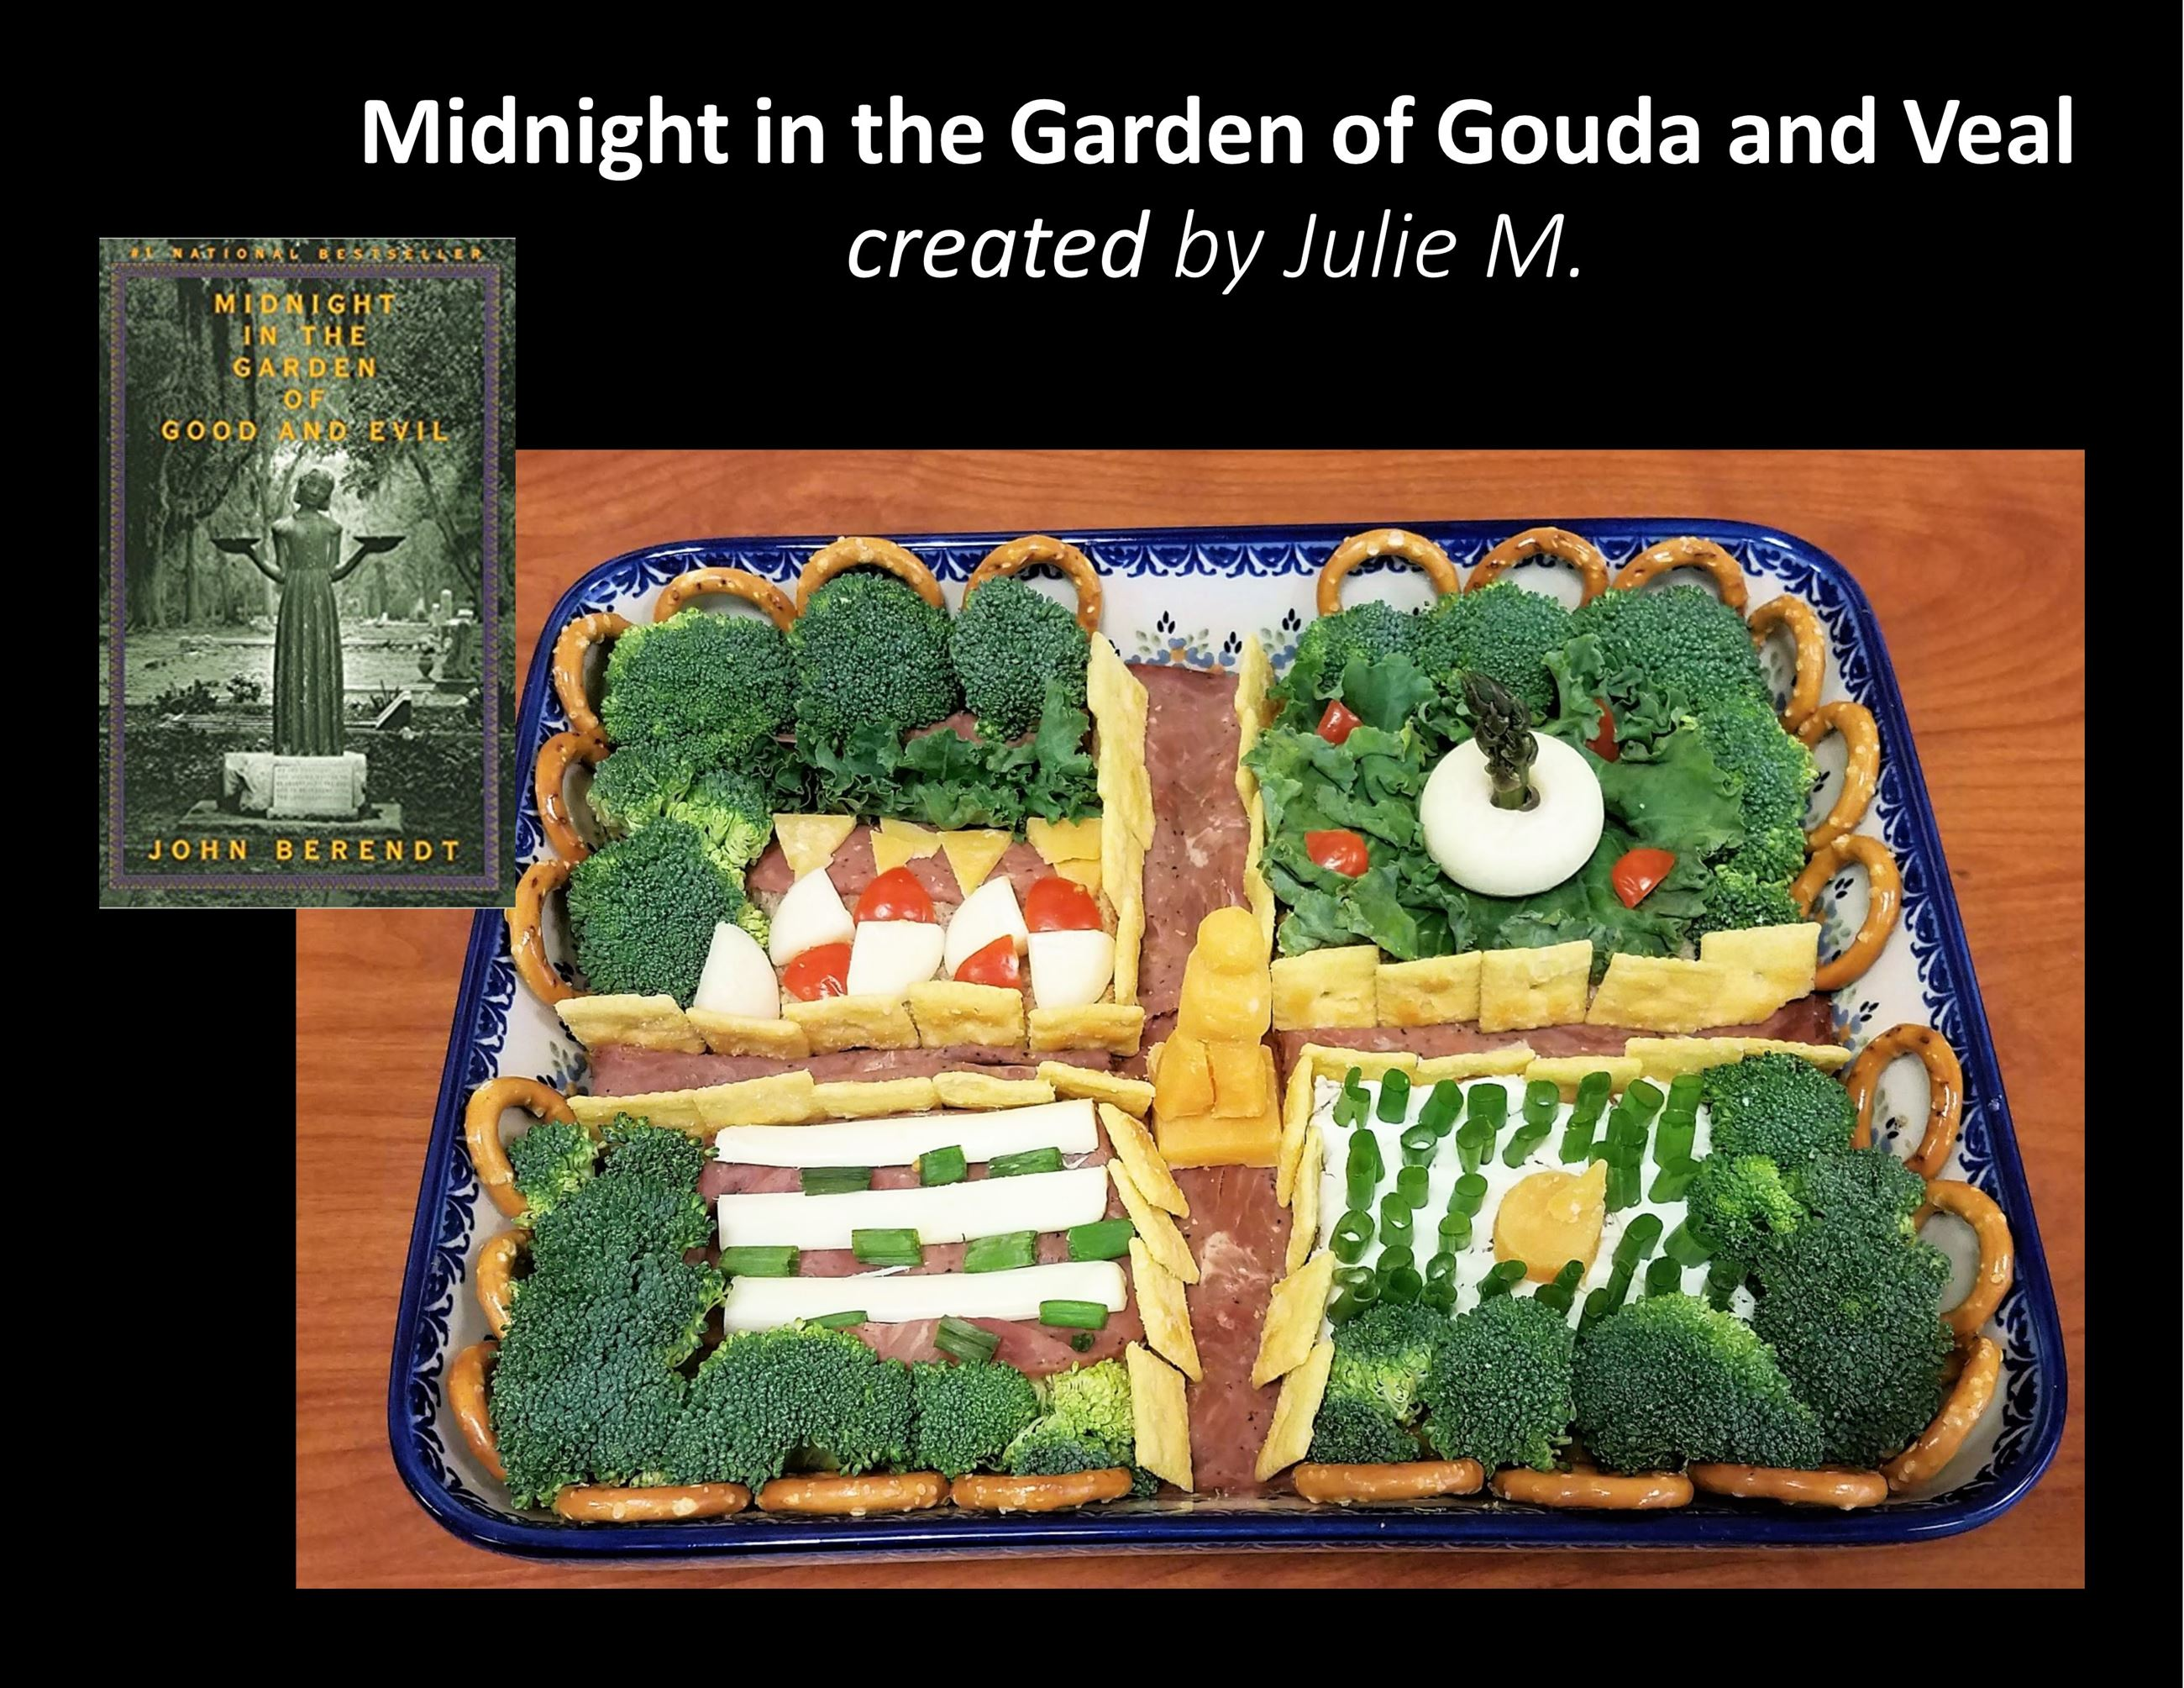 A3 Midnight in the Garden of Gouda and Veal by Julie M